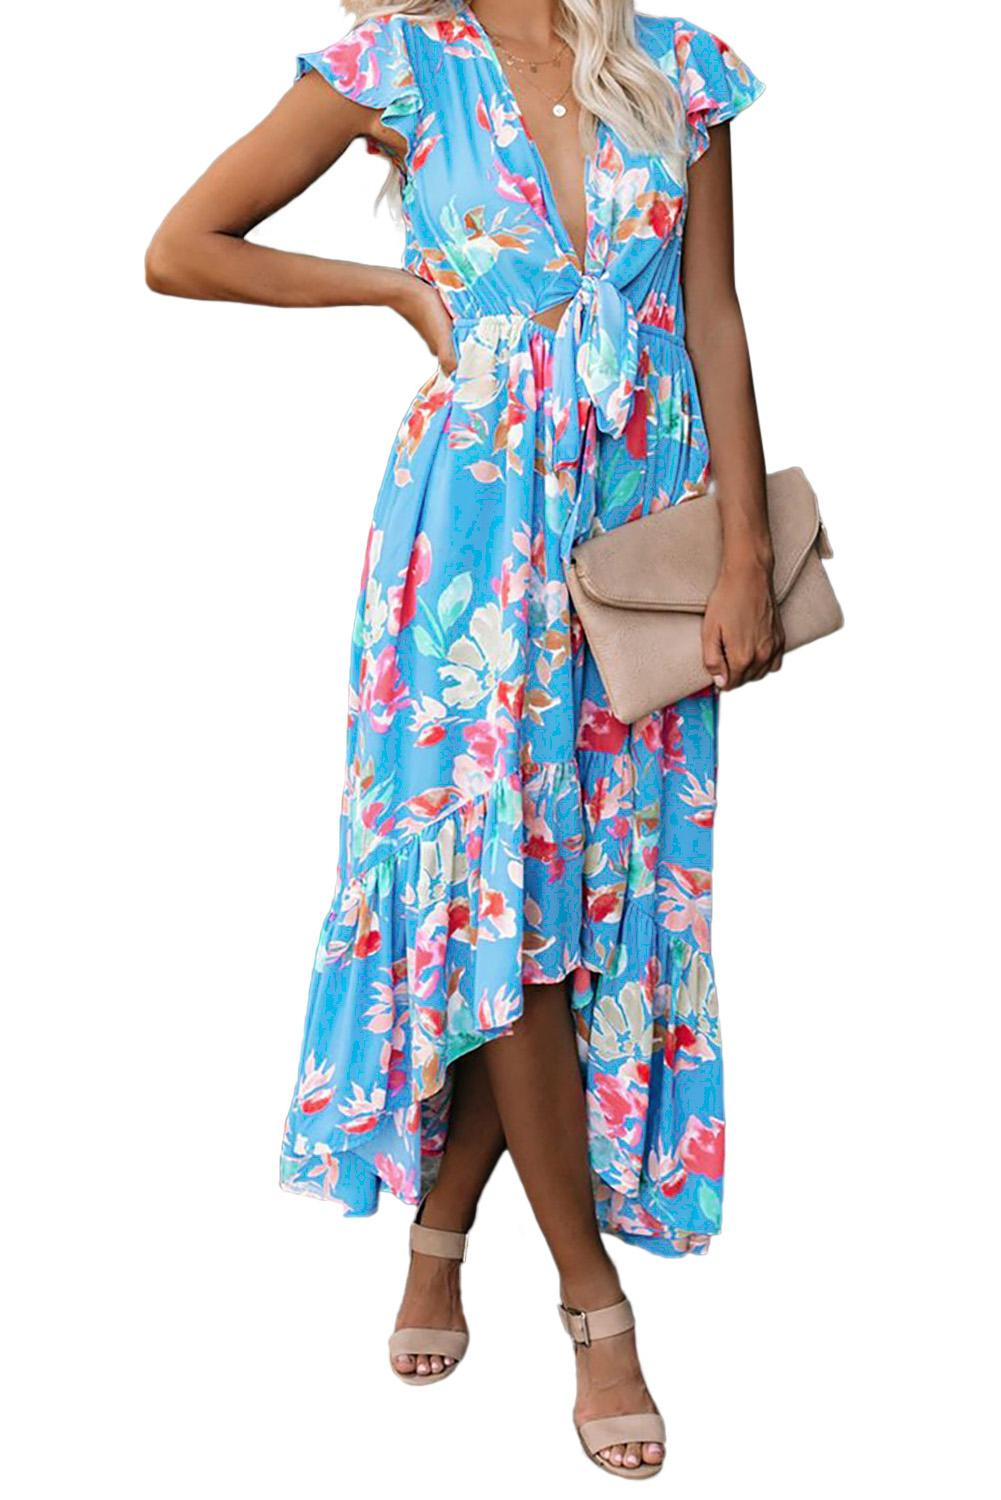 Rose Floral High Low Pocketed Tie Maxi <font><b>Dress</b></font> Women Sky Blue/<font><b>Red</b></font> Deep V Neck <font><b>Short</b></font> Sleeve Summer Beach Long Holiday <font><b>Dresses</b></font> S-XL image